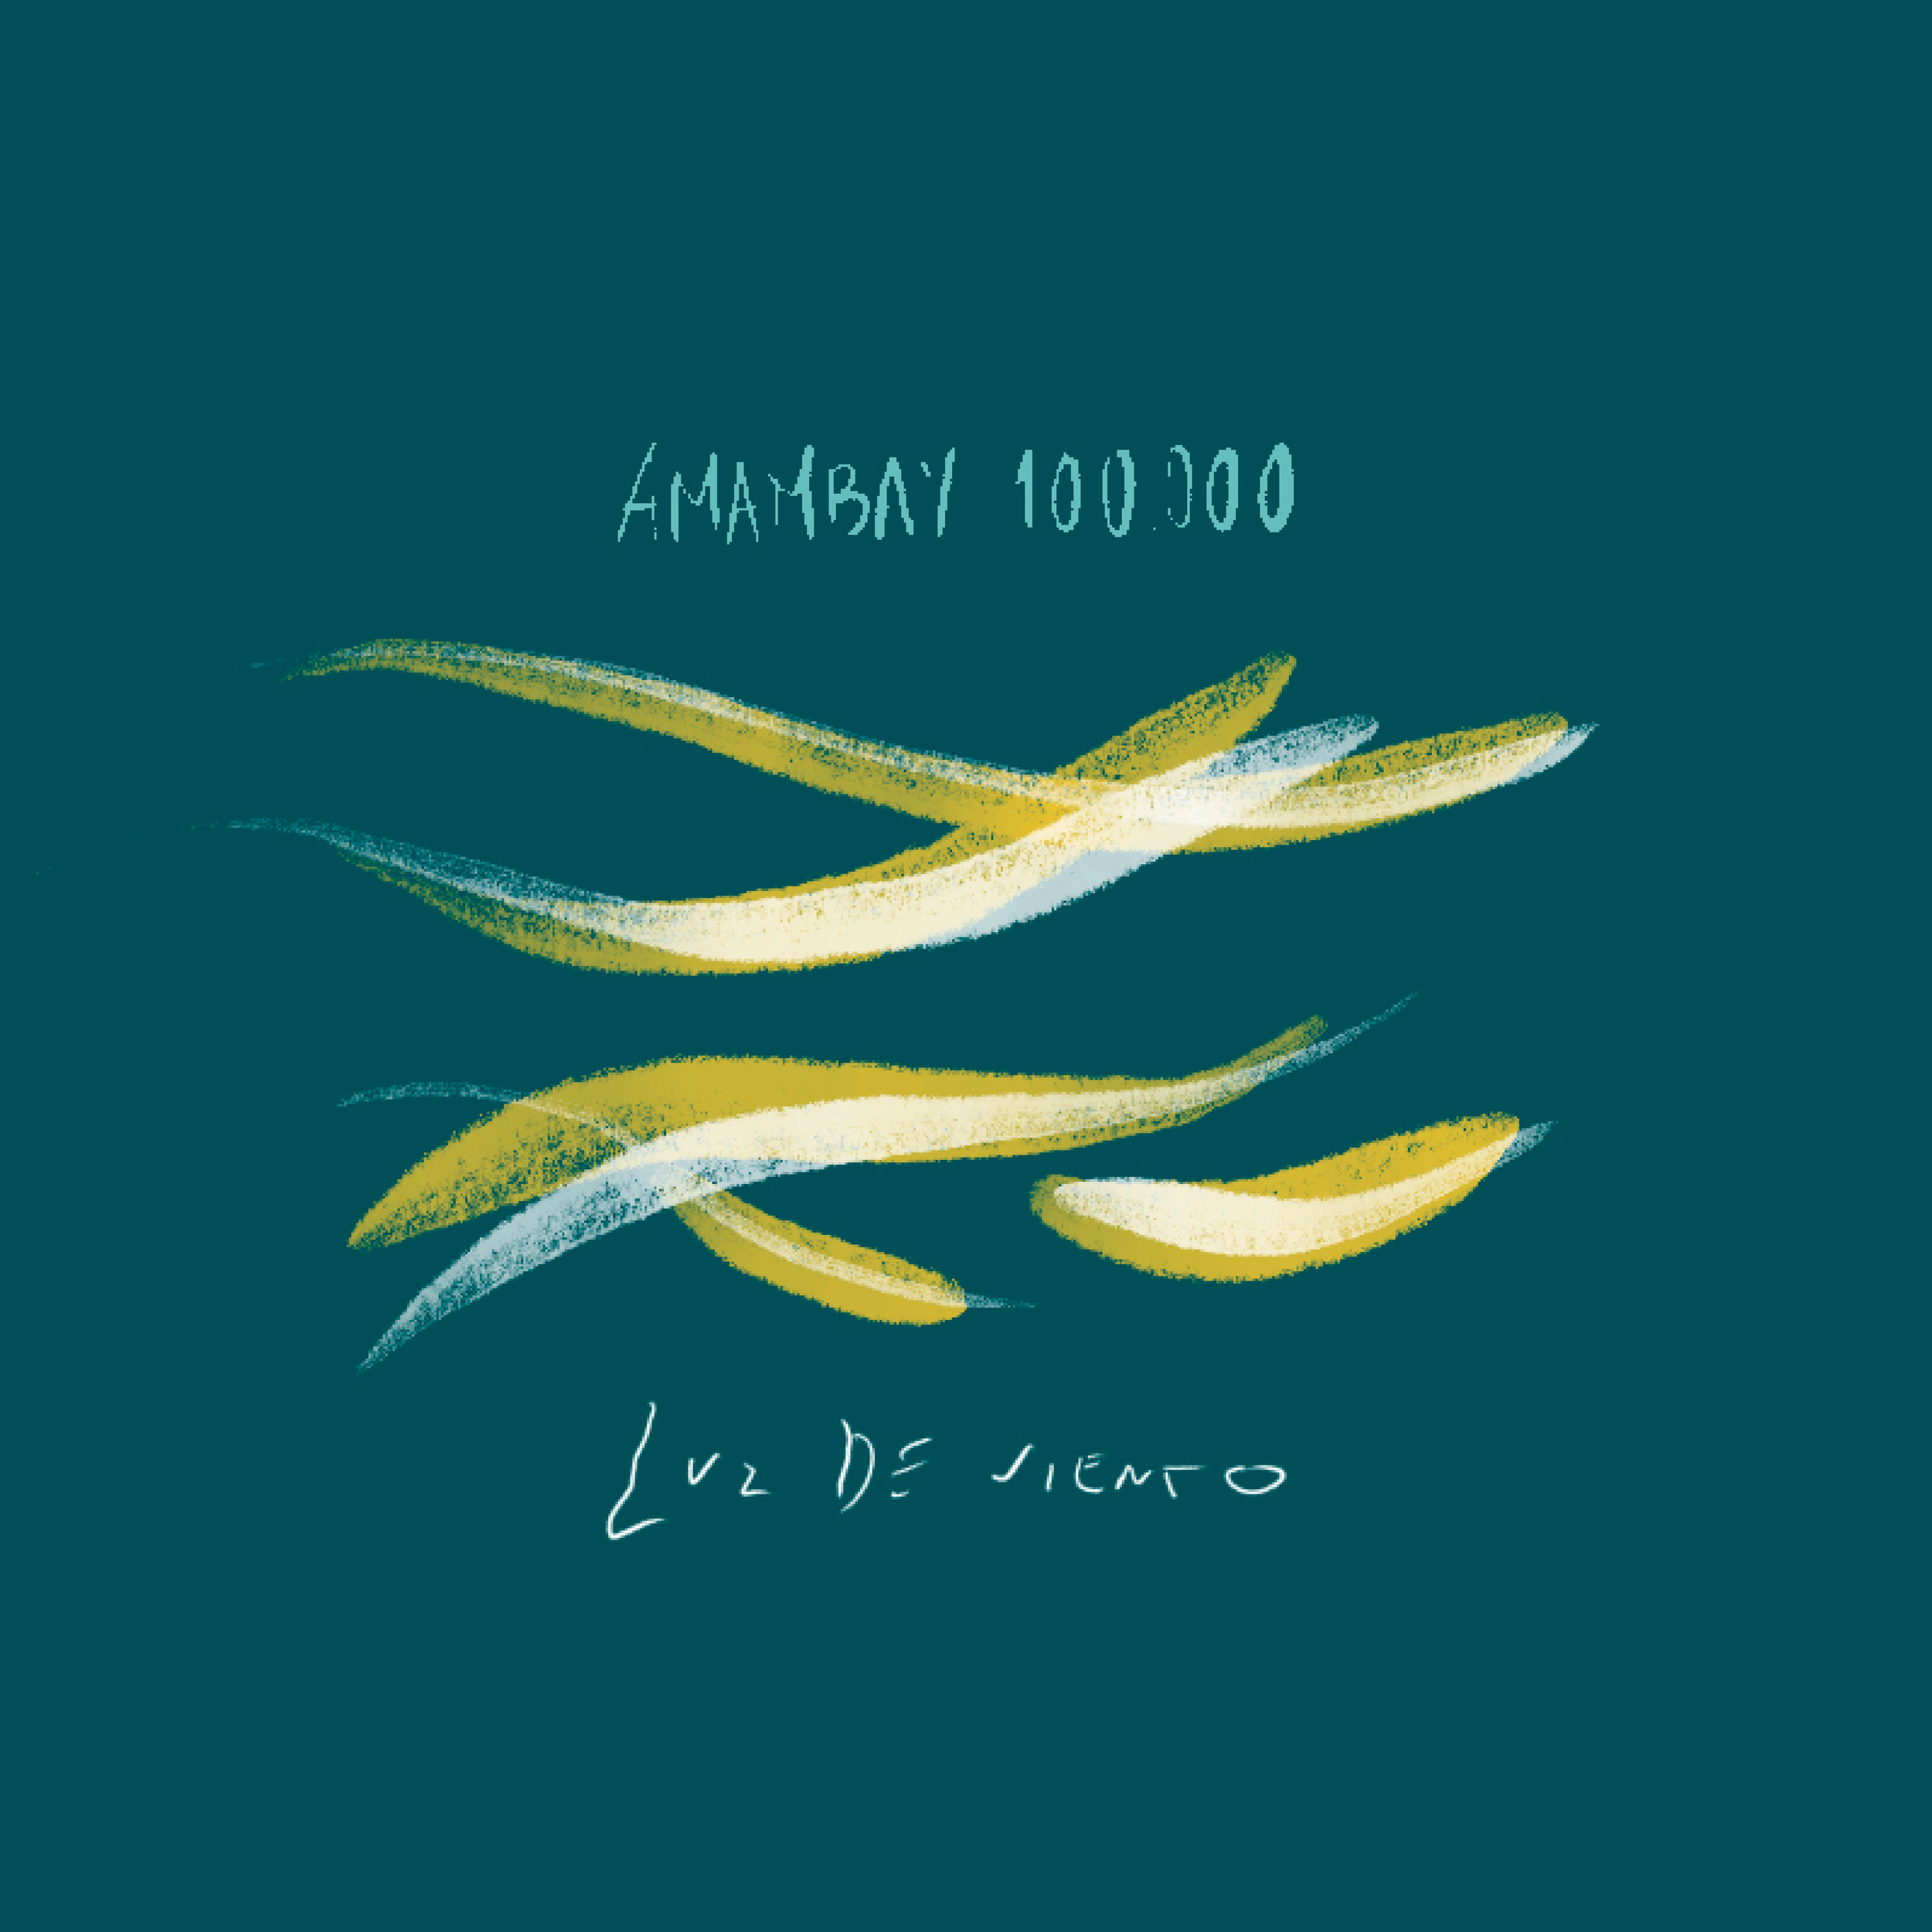 AMAMBAY 100000 - Luz de Viento (Single)   From Buenos Aires, Argentina Amambay give us all the cumbia style that characterizes the fusion between the roots and the neo sounds of this classic genere.